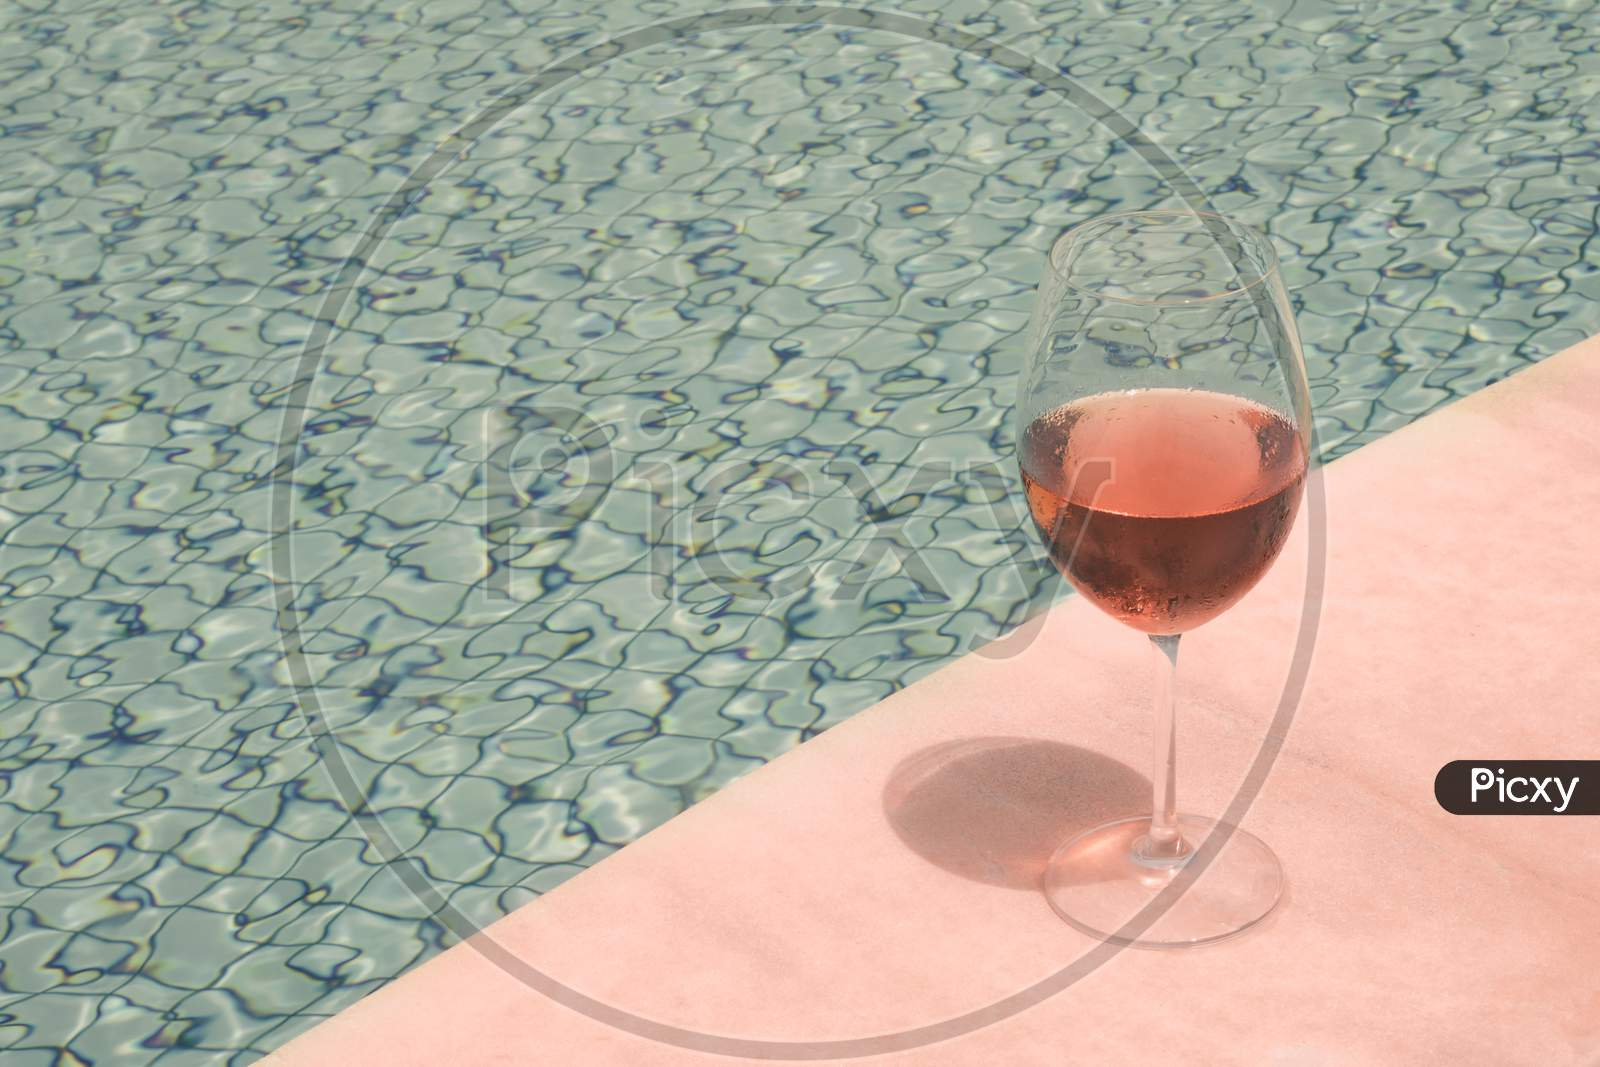 Crystal Goblet With Rose Wine On The Edge Of A Swimming Pool. High Class People Drink Concept.